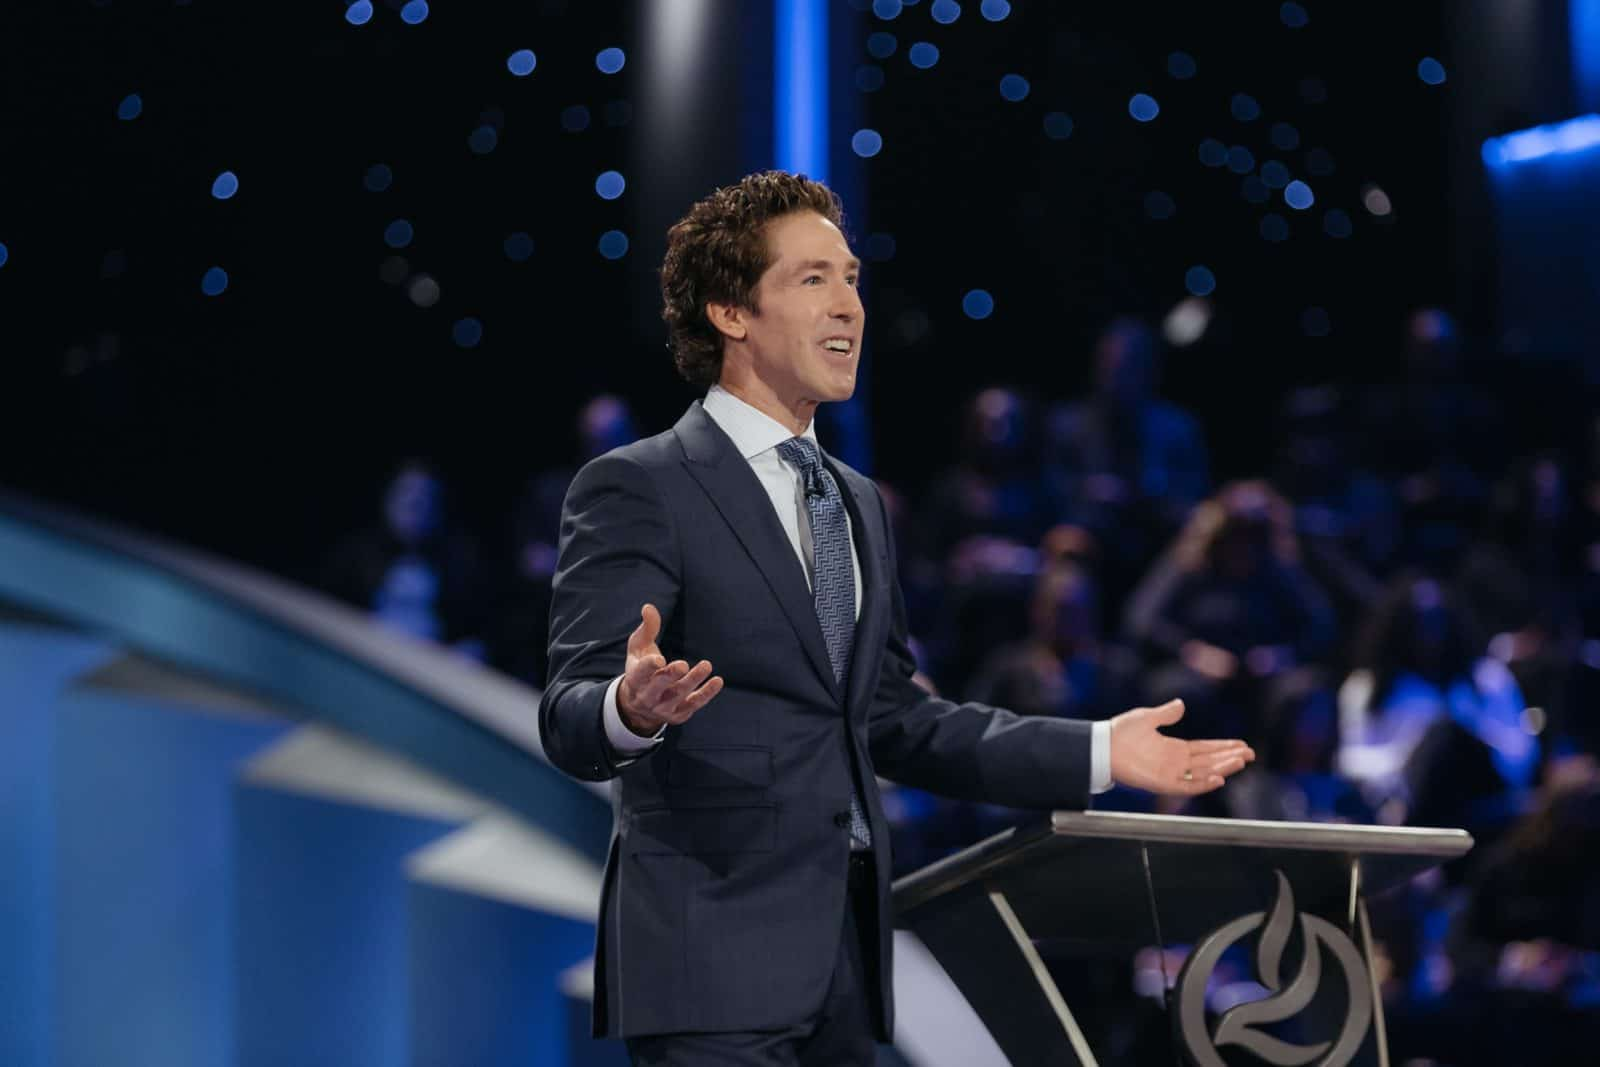 Photo of Joel Osteen Today's Sermon: Travel Steadily